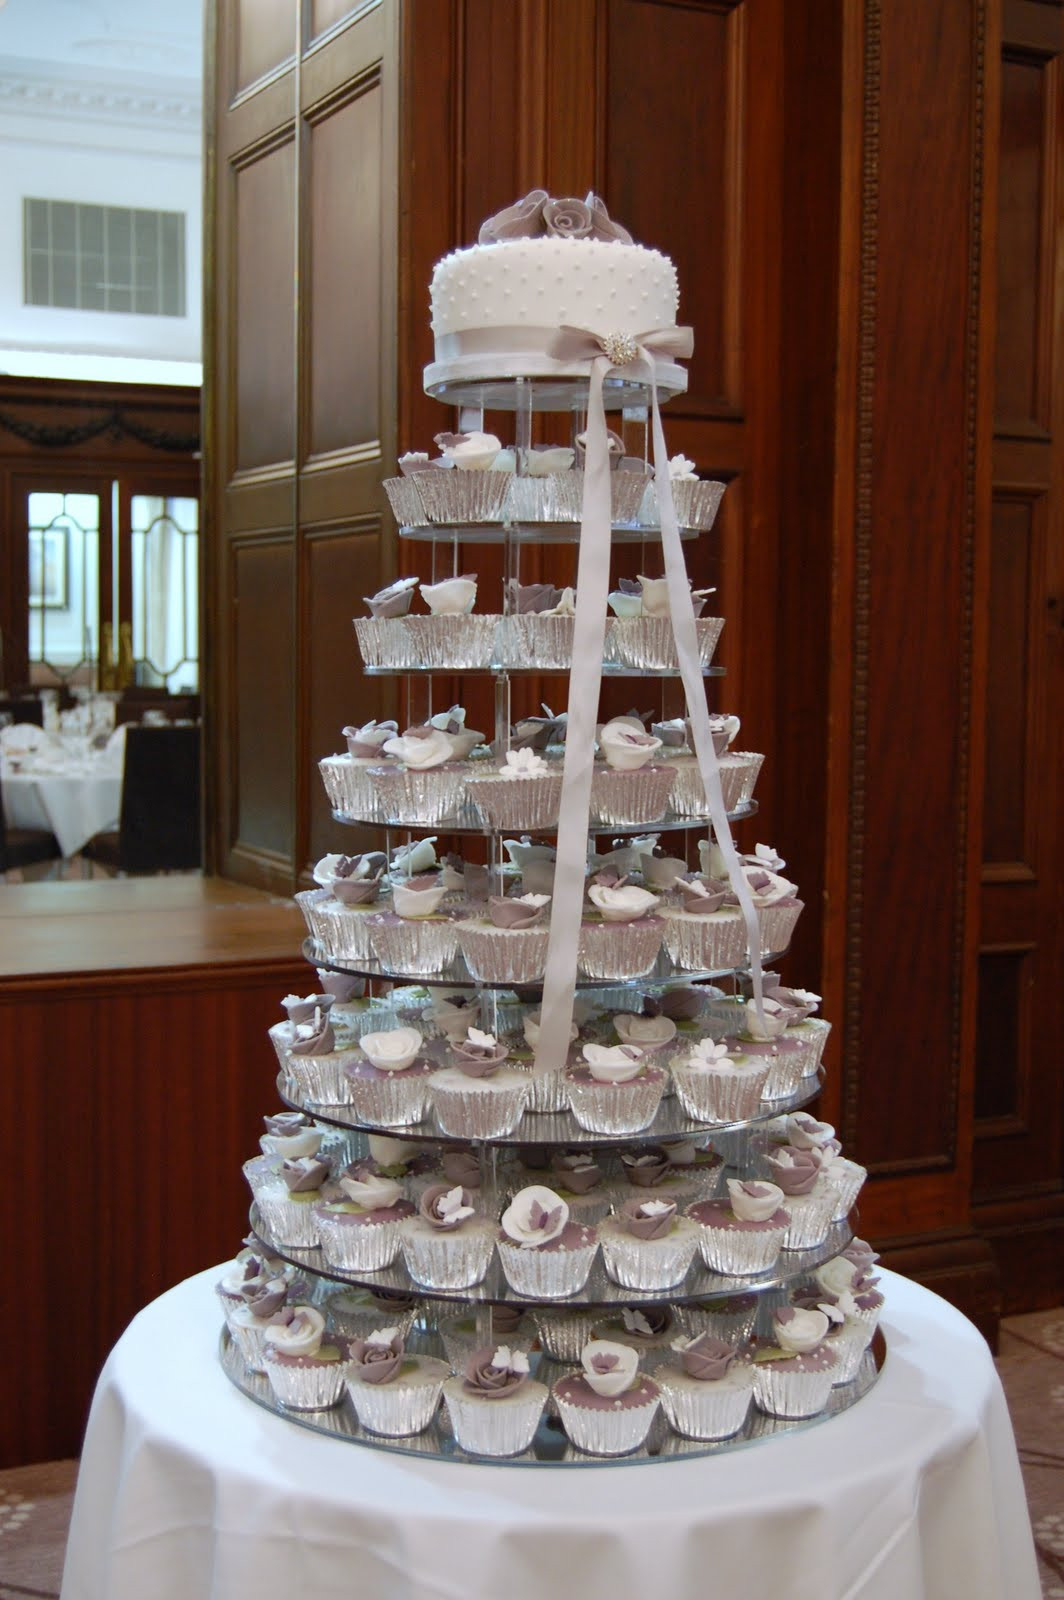 Wedding Cakes And Cupcakes  iced October 2009